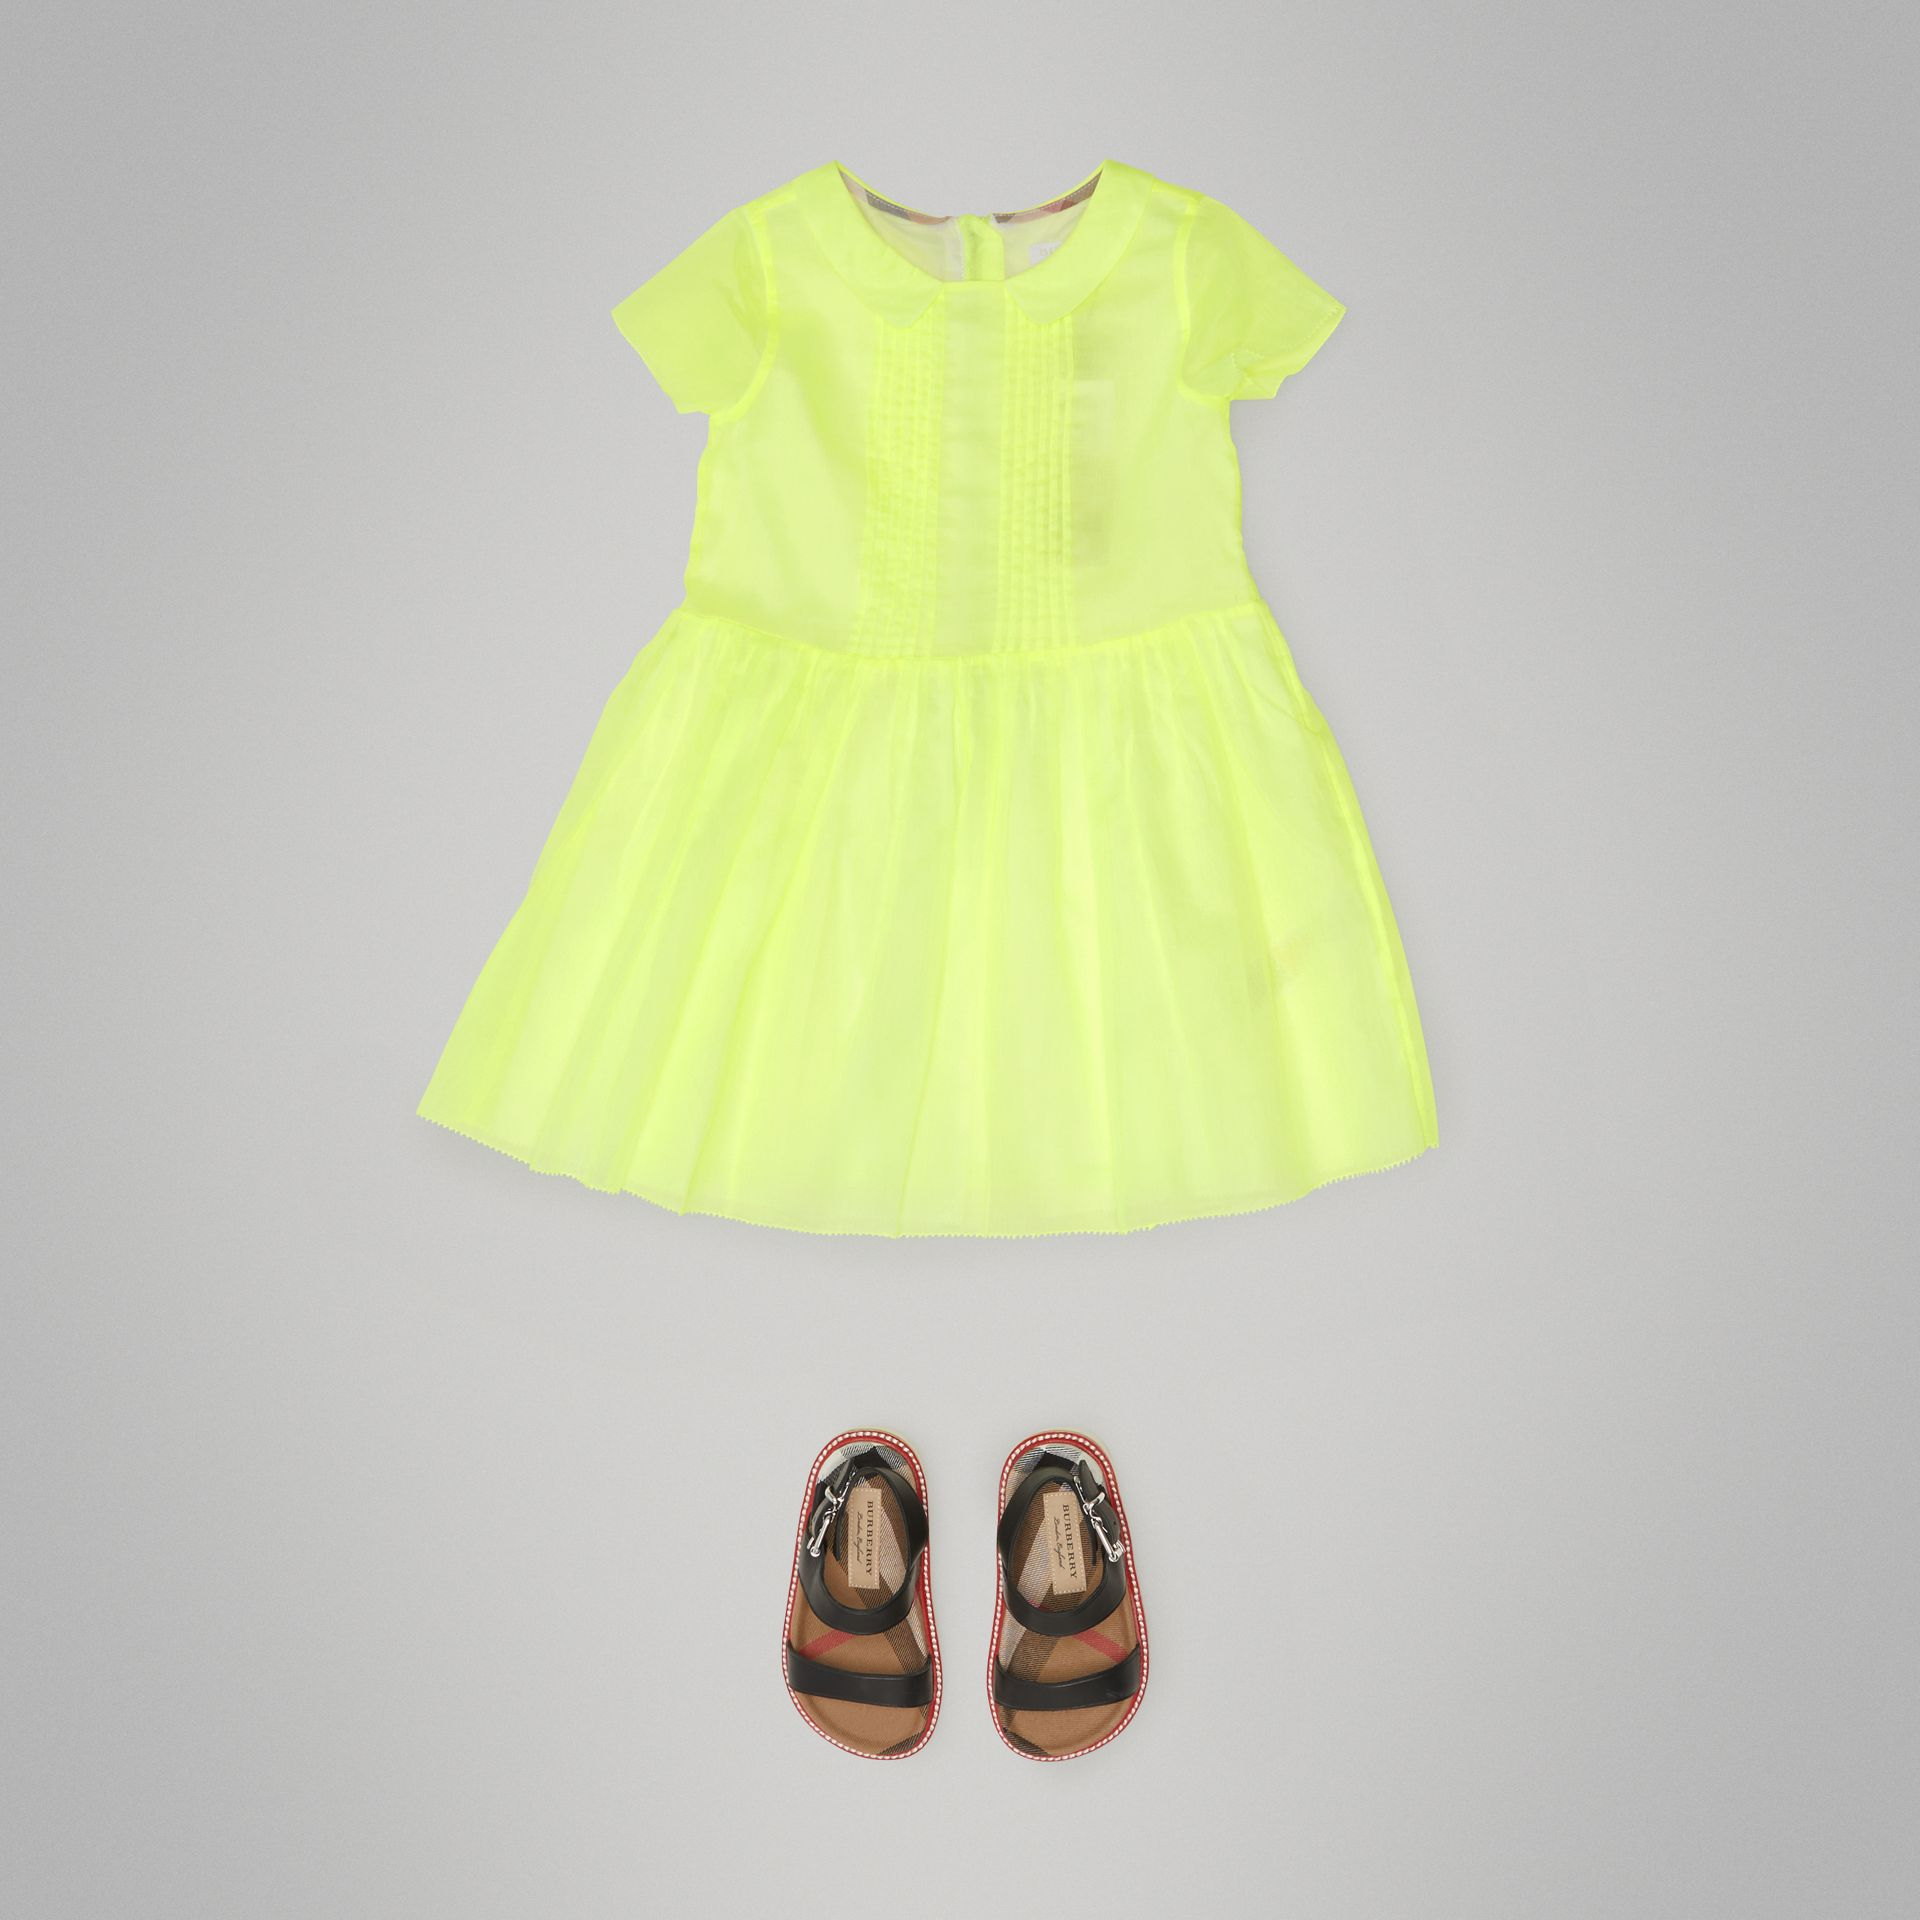 Pintuck Detail Cotton Voile Dress in Neon Yellow | Burberry - gallery image 2